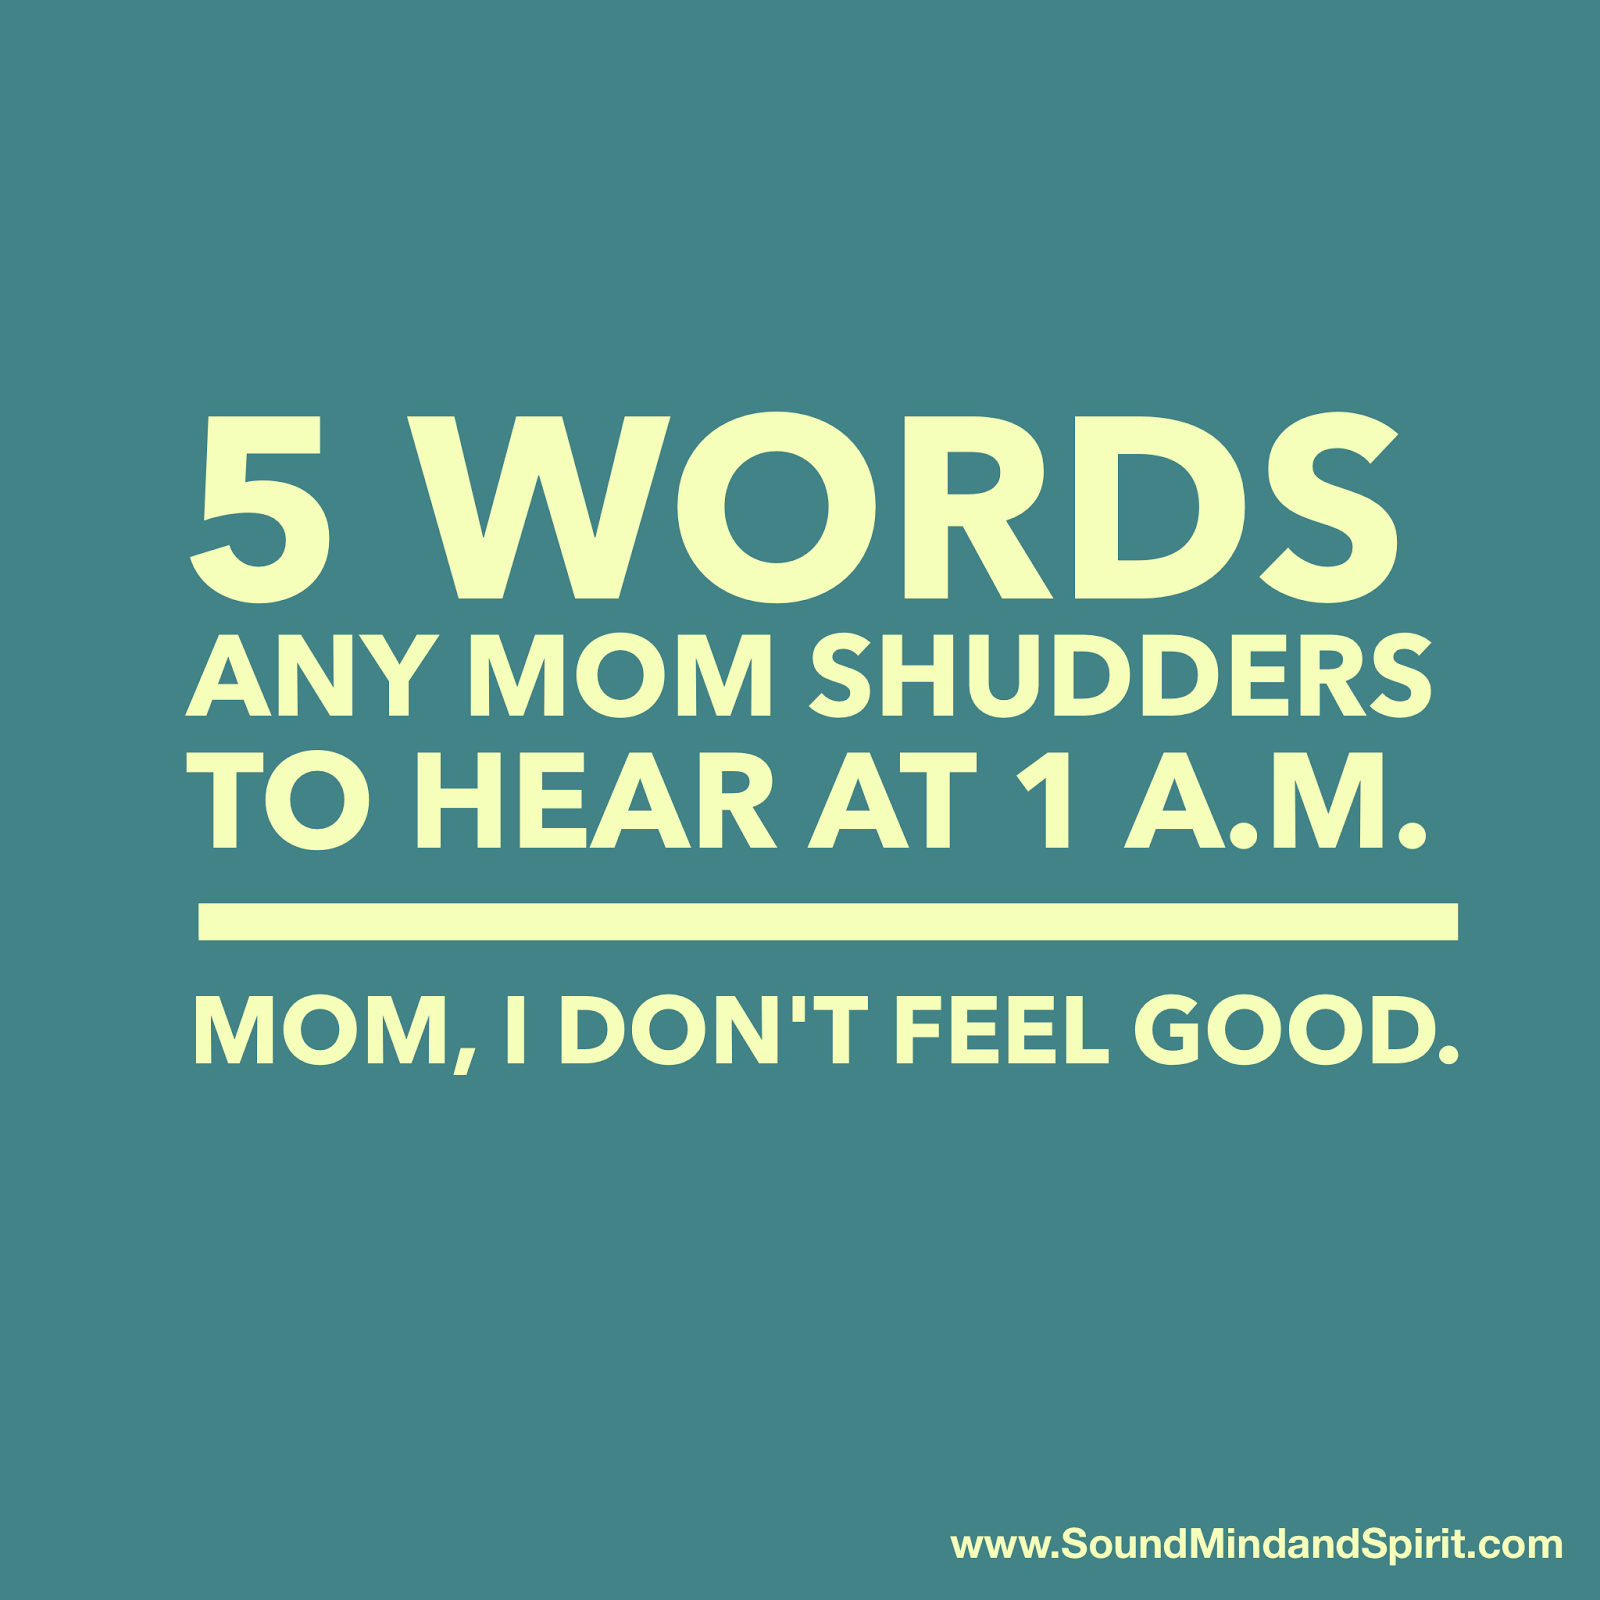 5 Words a Working Mom Hates to Hear